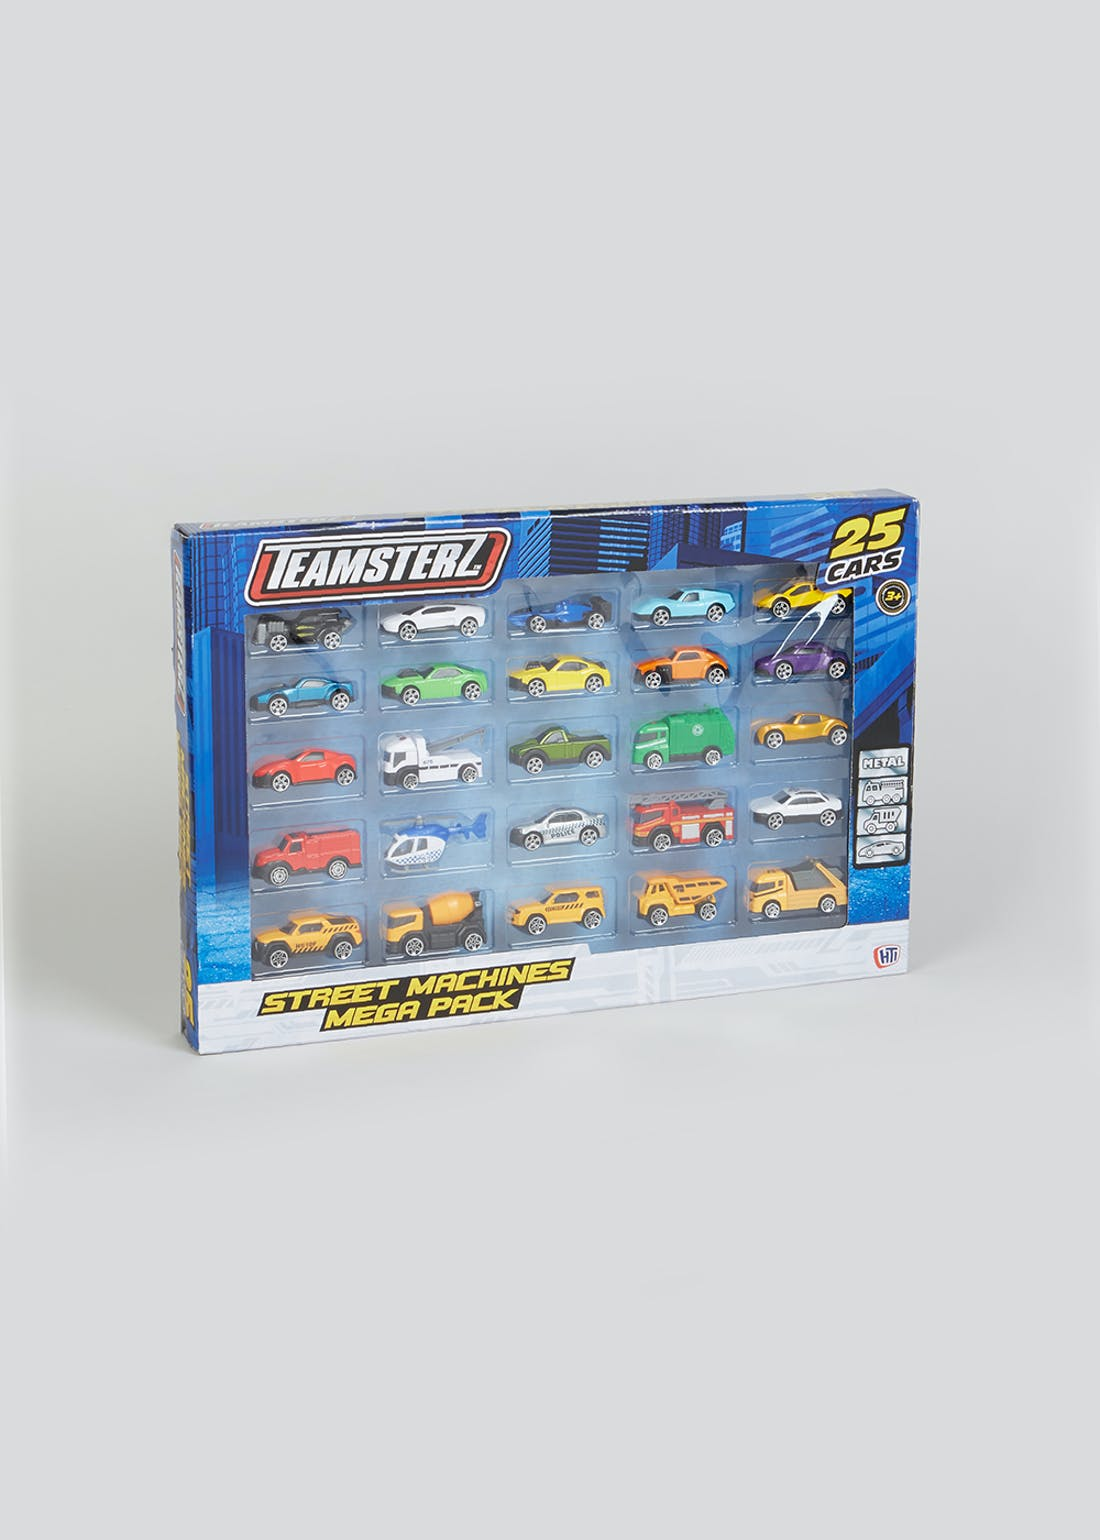 Teamsterz Street Machines Car Mega Pack (50cm x 33.5cm x 4.5cm)